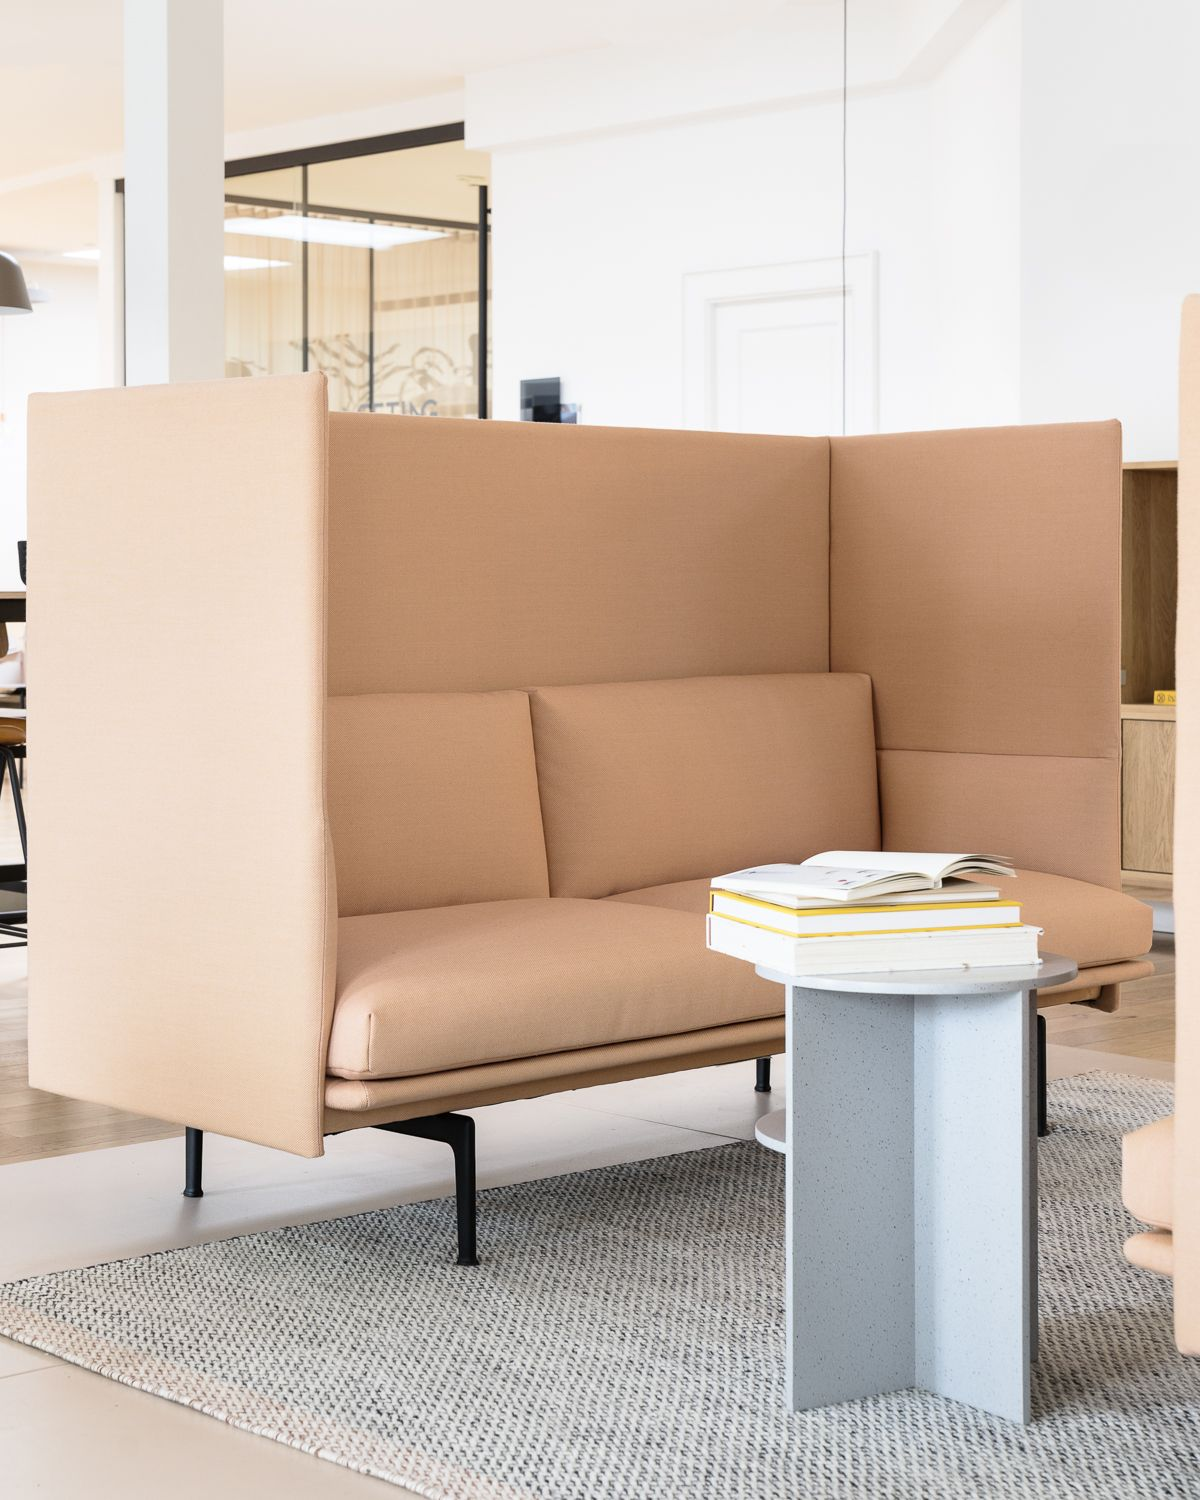 The Outline Highback Sofa From Muuto Combines The Soft Deep Seat And Clean Refined Lines Of Outlin Interior Design Furniture Furniture Design Furniture Styles